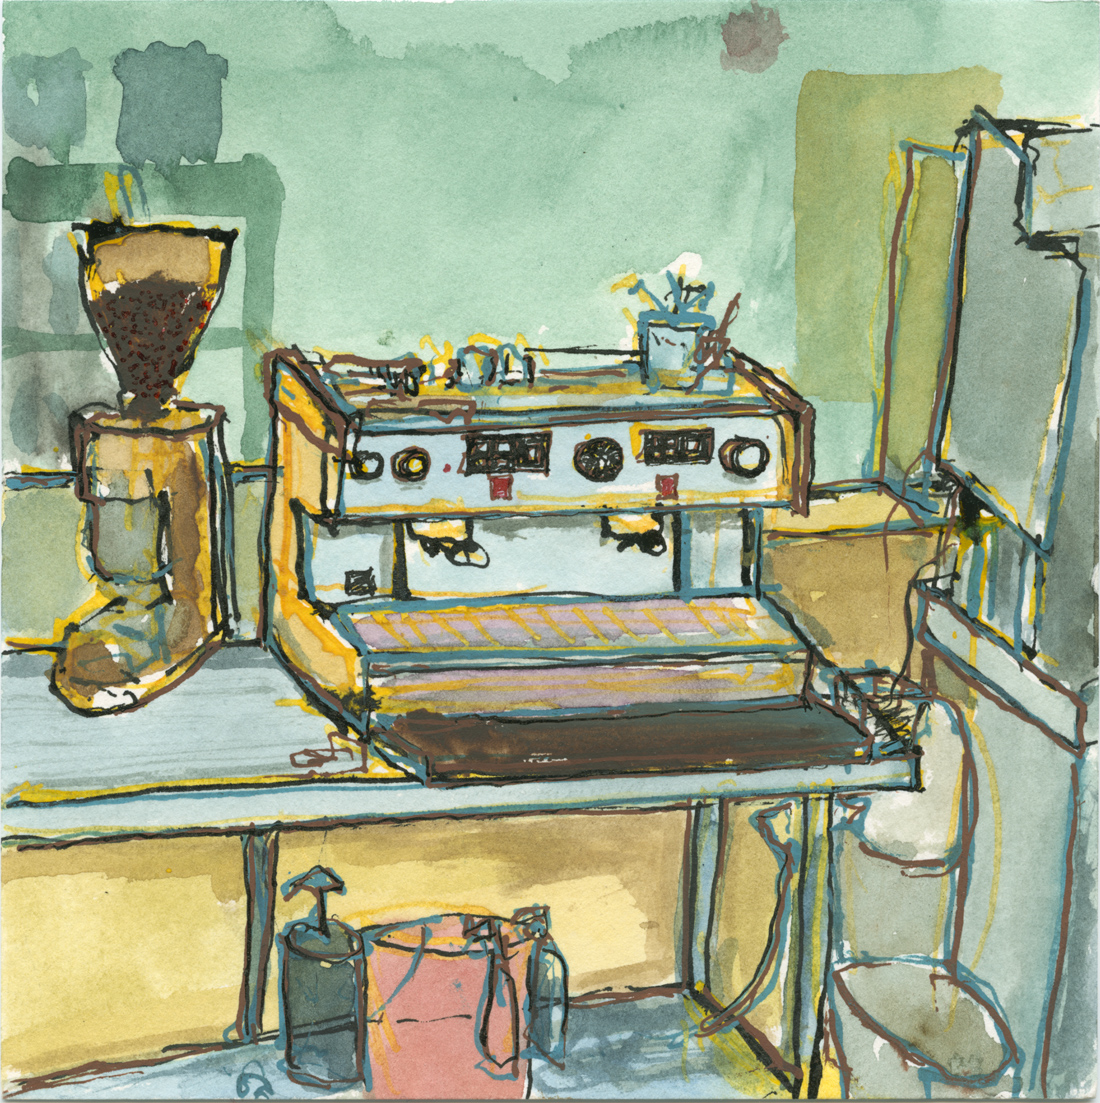 A drawing of a commercial espresso maker in Winston Salem, NC